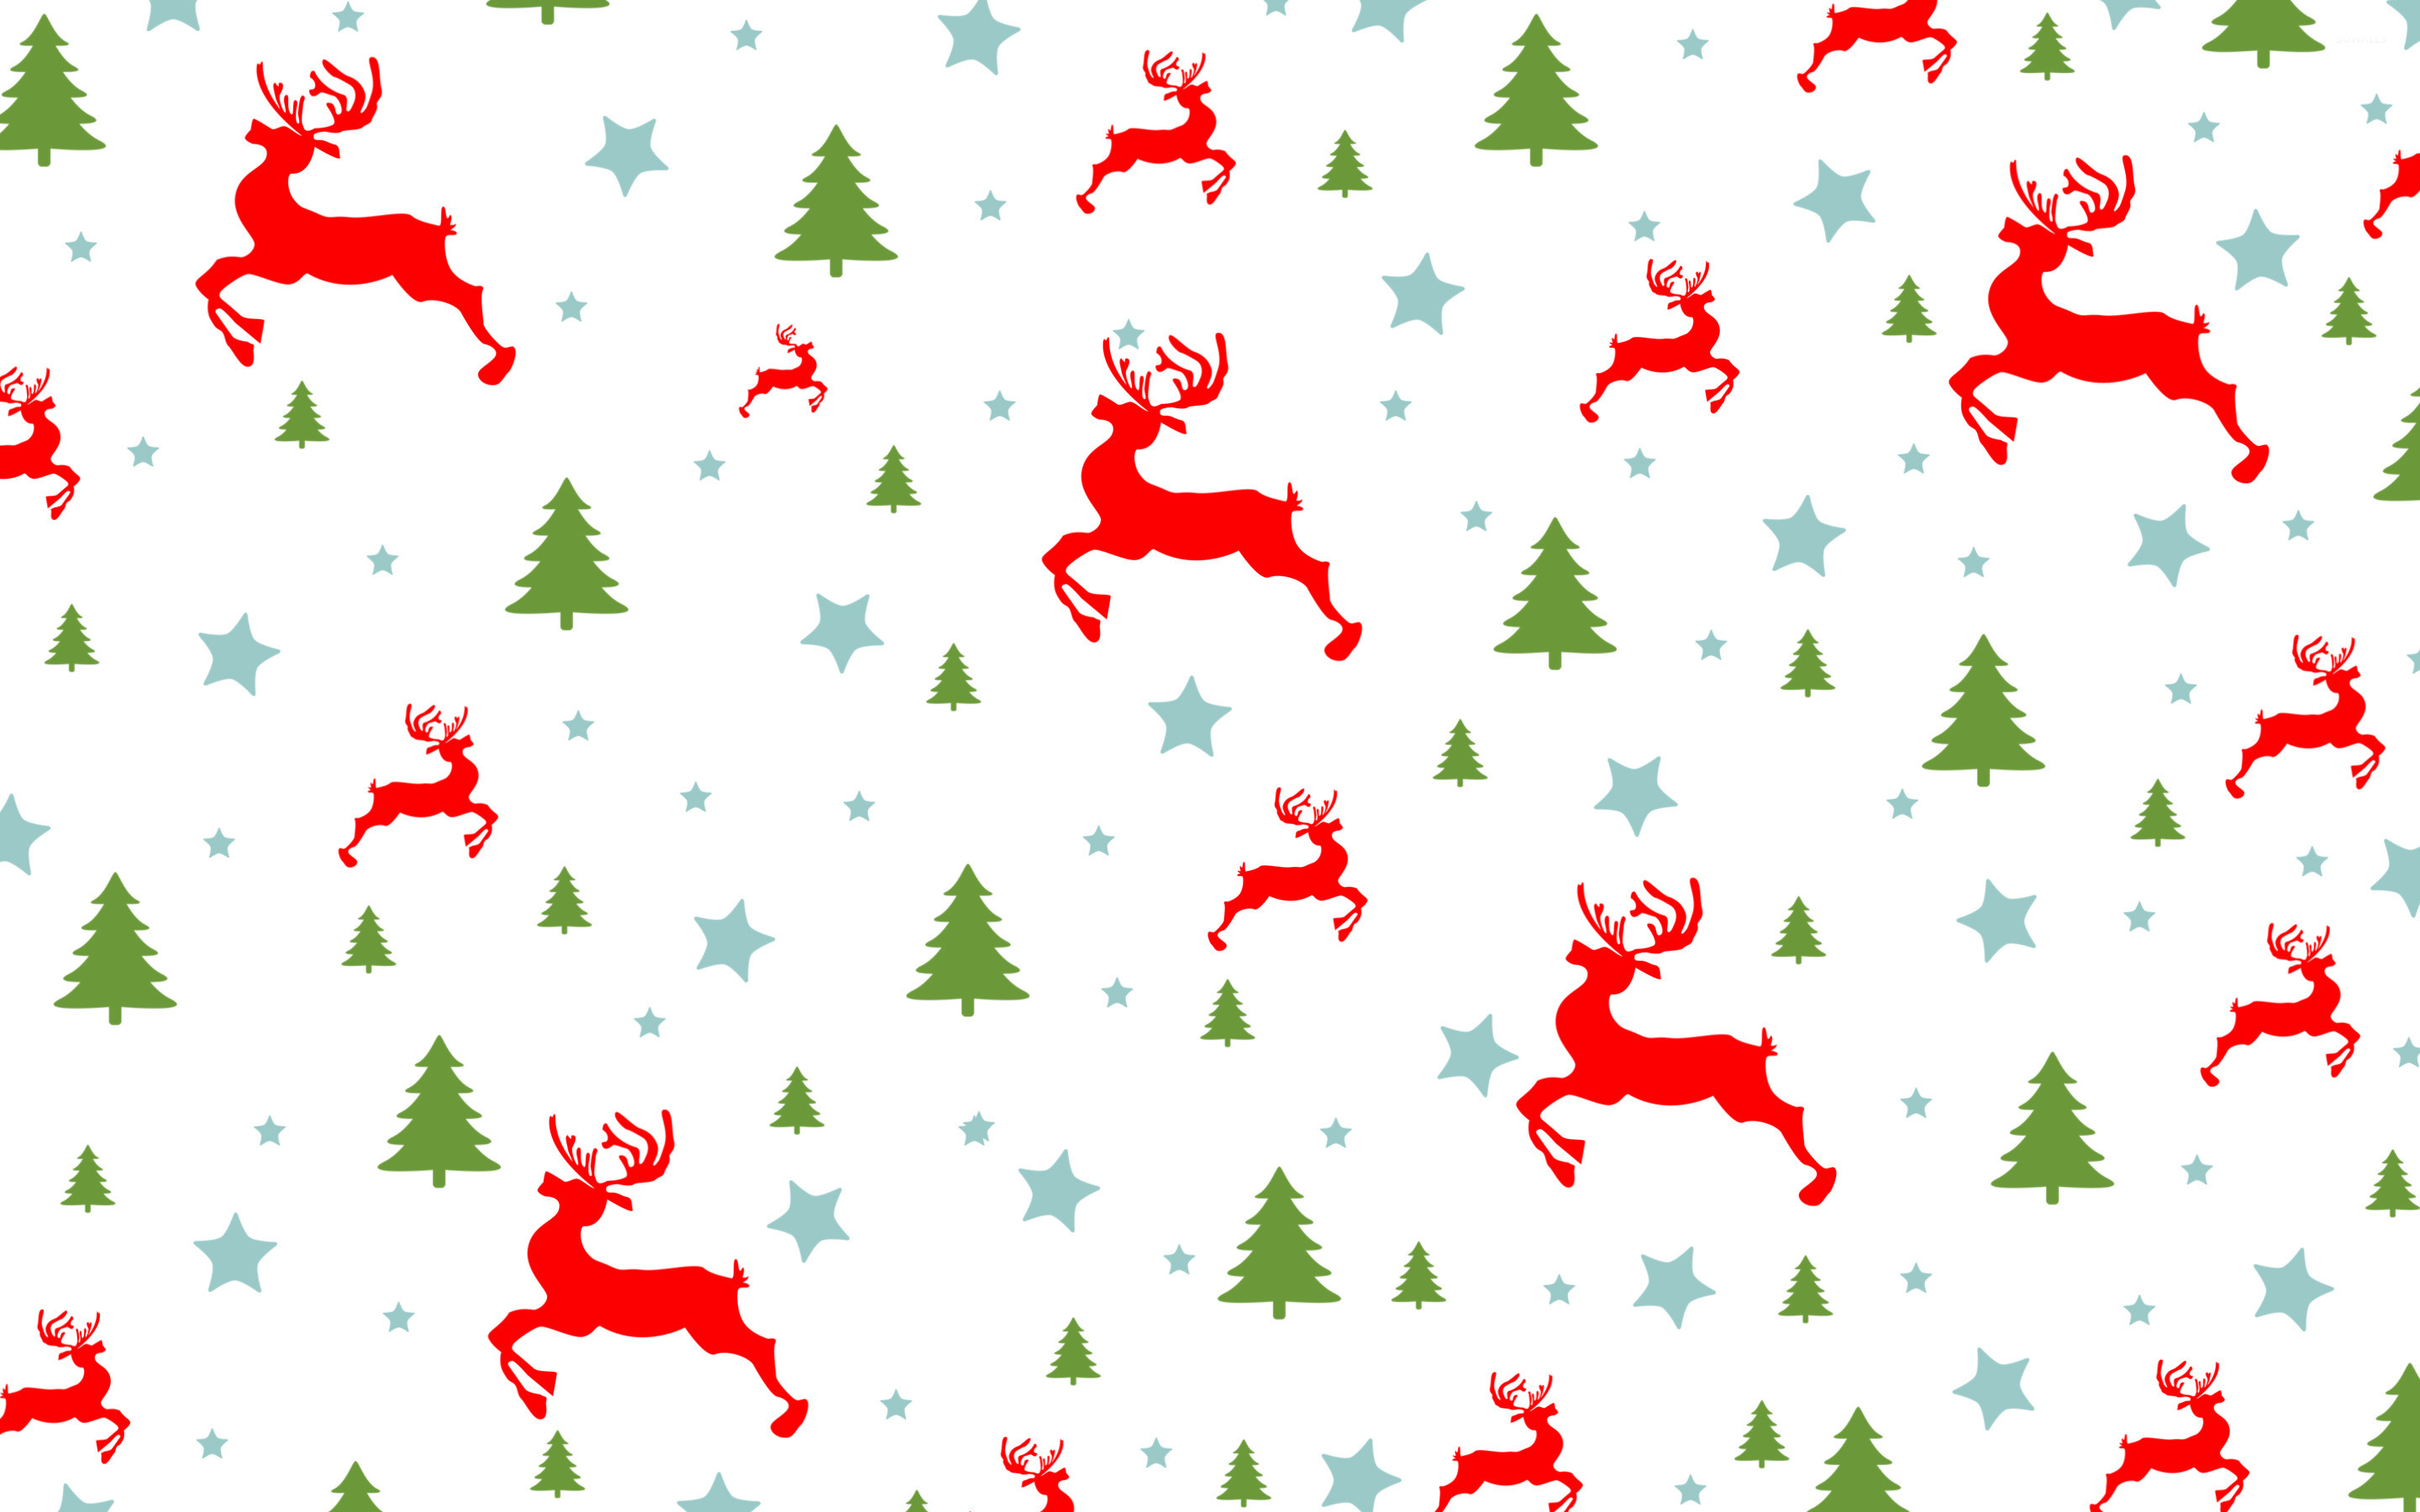 Christmas pattern wallpaper   Holiday wallpapers   25471 1280x800